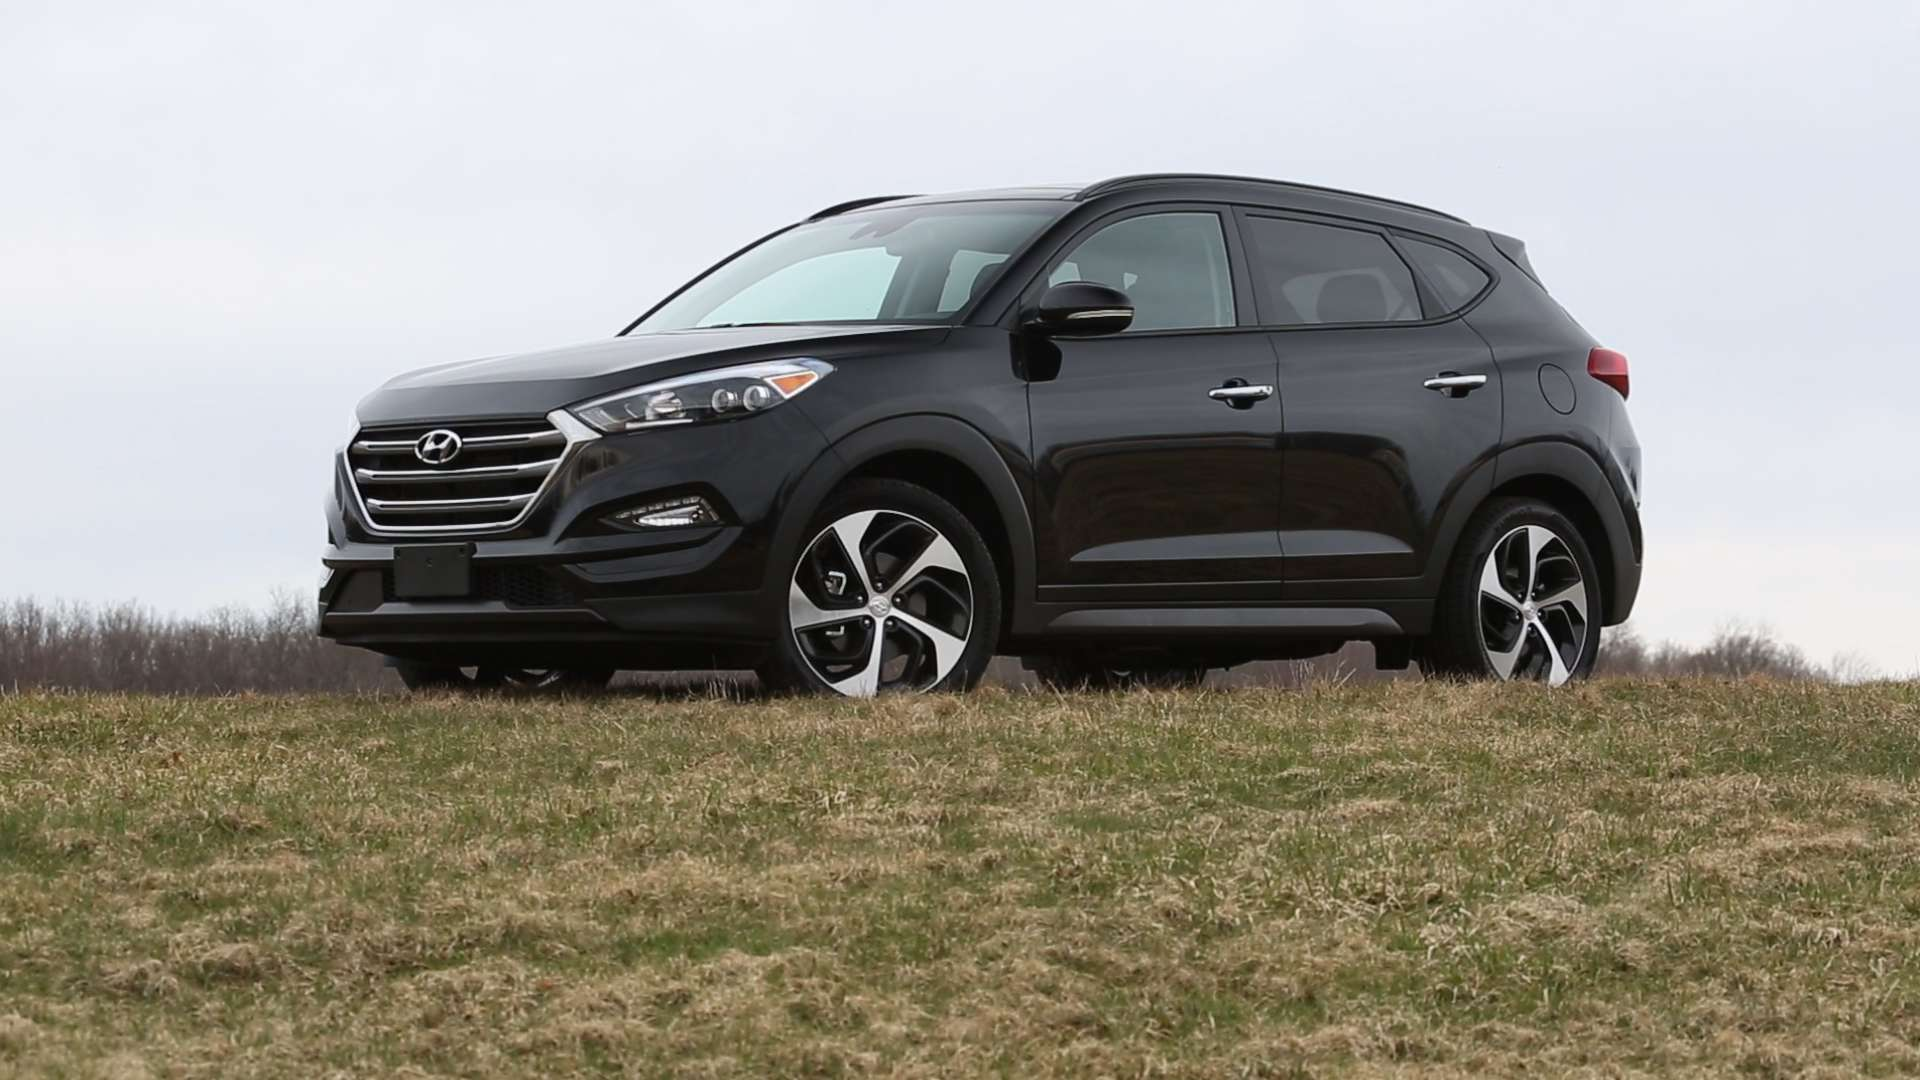 2016 hyundai tucson review consumer reports. Black Bedroom Furniture Sets. Home Design Ideas